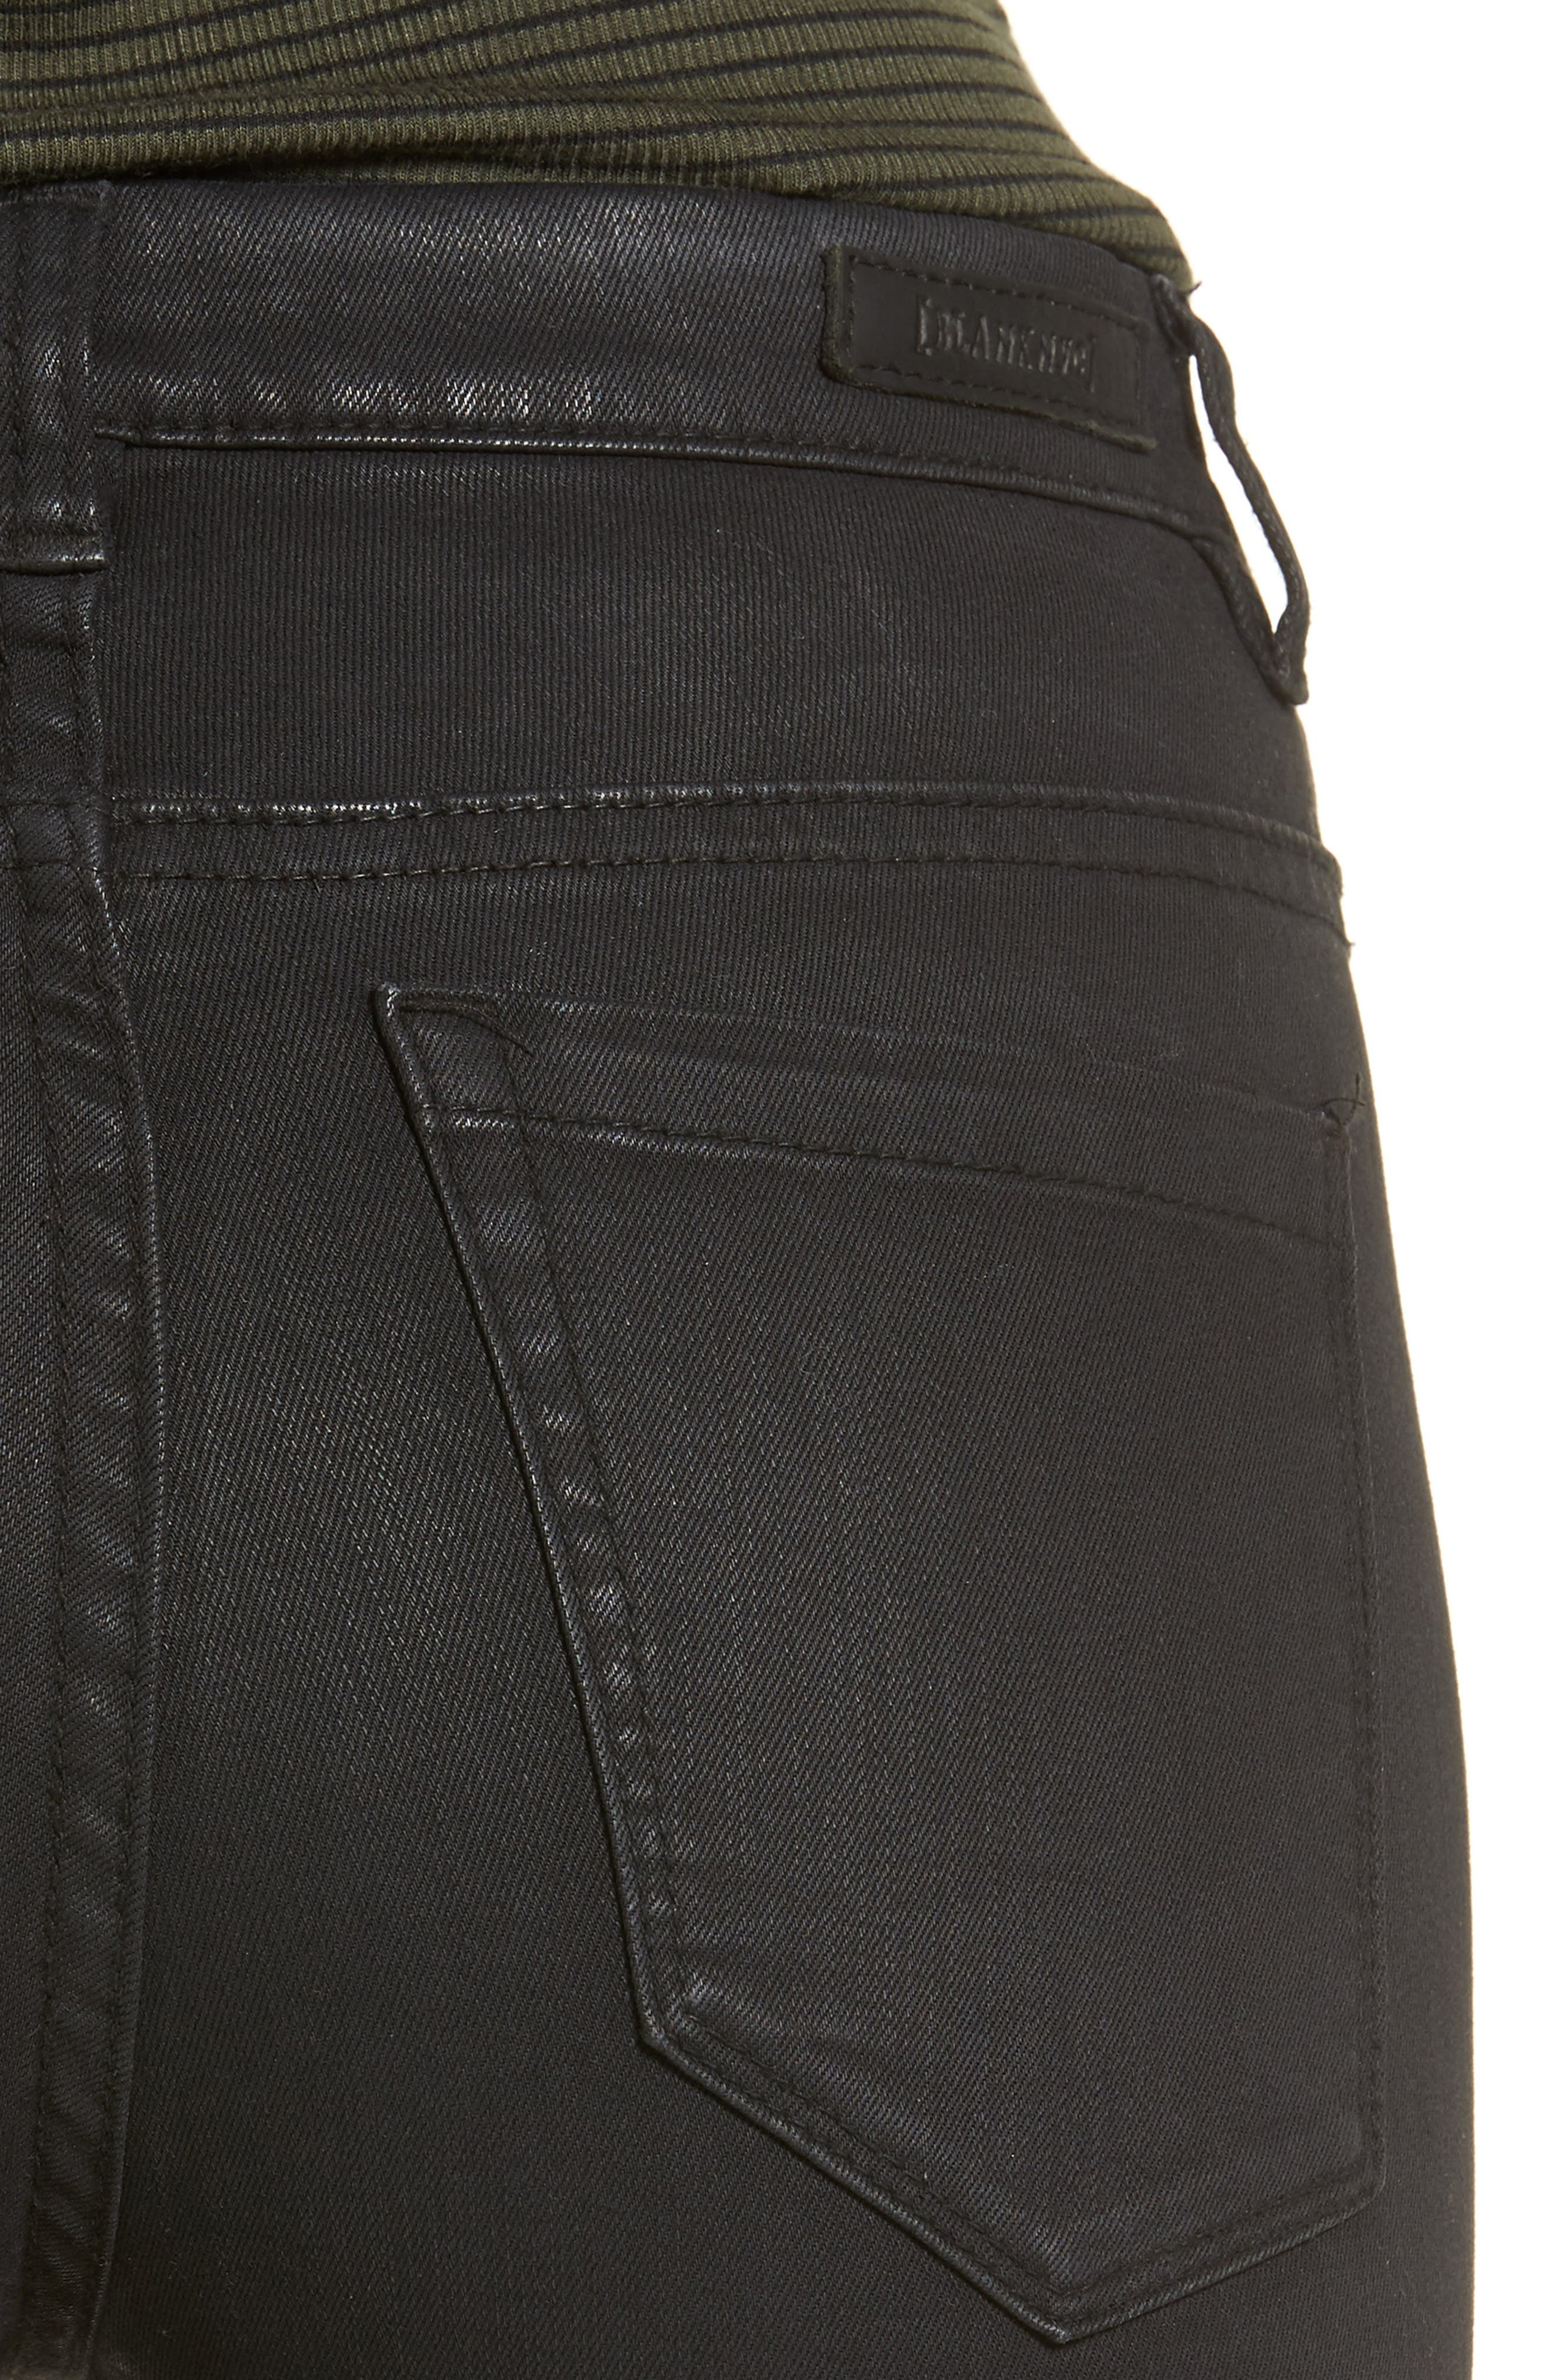 'All Lacquered Up' Coated Skinny Jeans,                             Alternate thumbnail 4, color,                             001